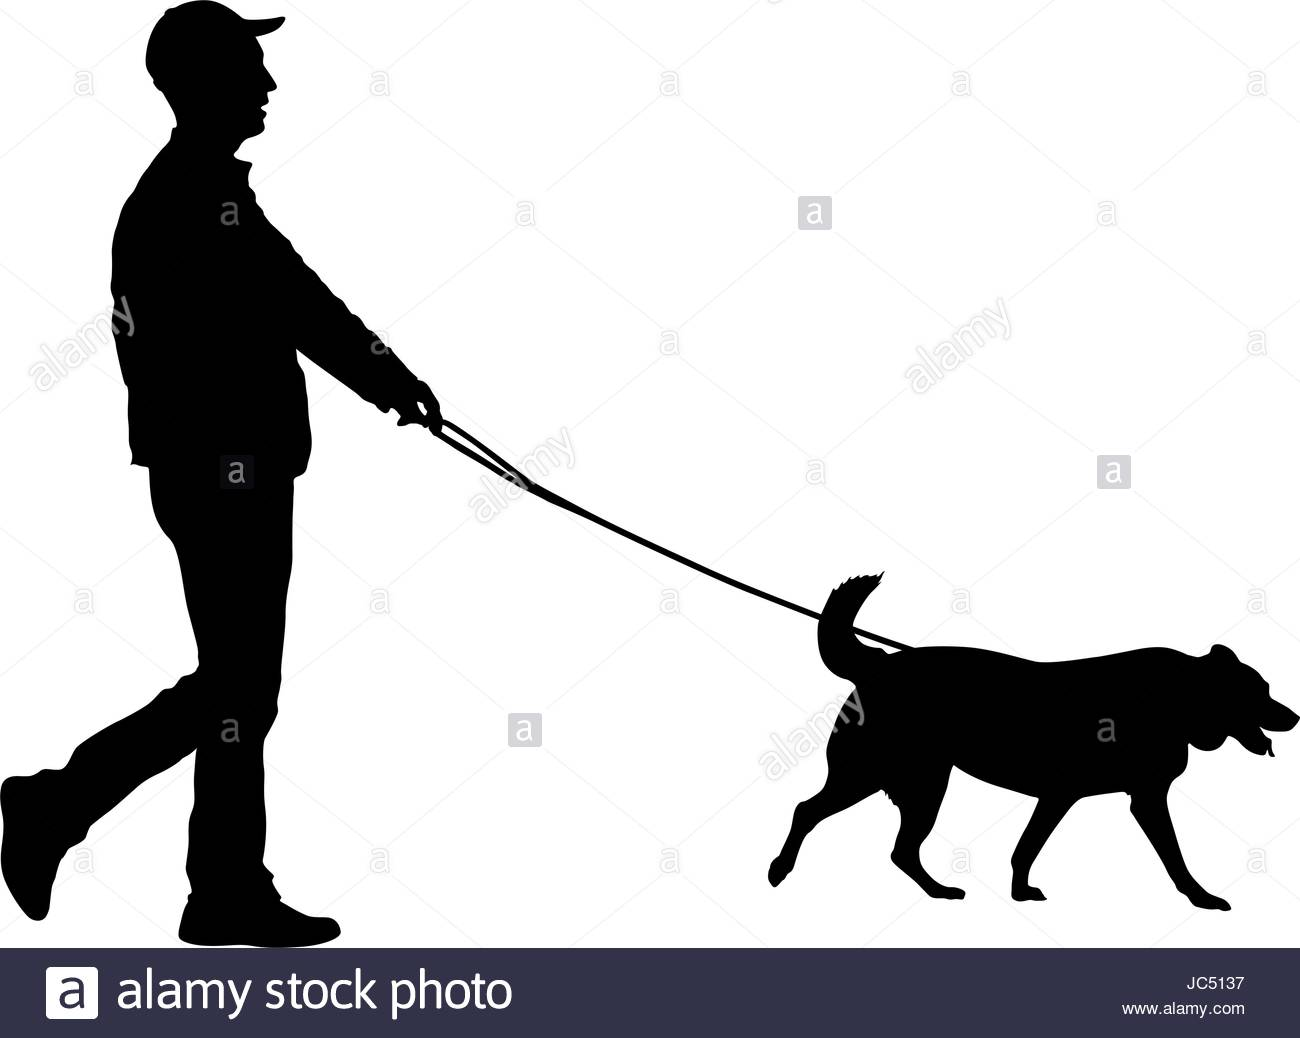 1300x1038 Silhouette Of Man And Dog On A White Background Stock Vector Art